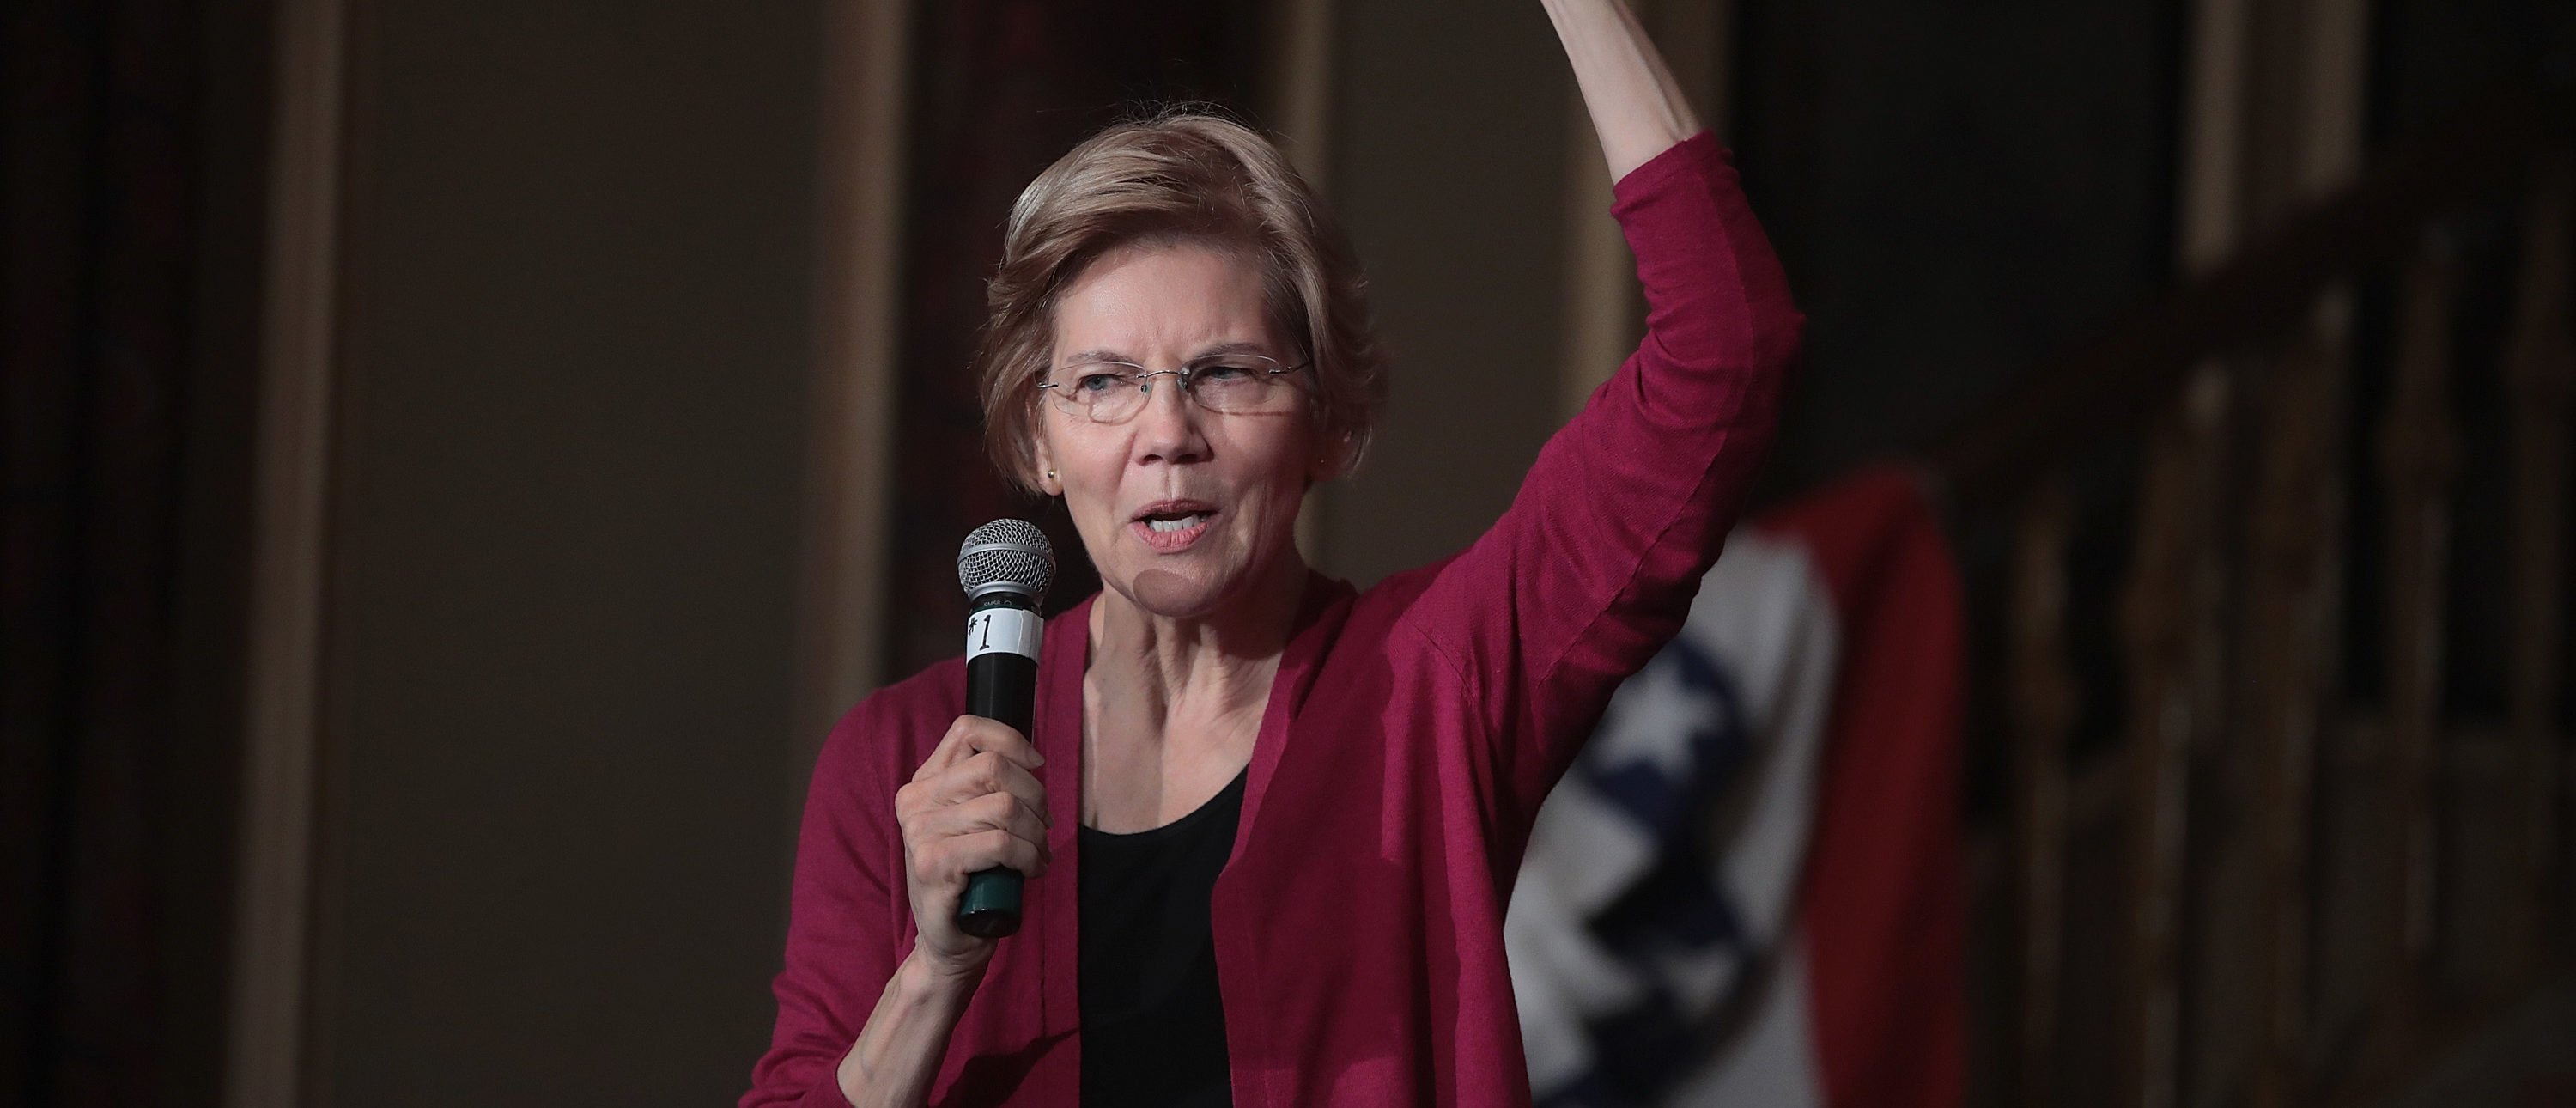 Sen. Elizabeth Warren (D-MA) speaks to guests during an organizing event at the Orpheum Theater on January 5, 2019 in Sioux City, Iowa. (Photo by Scott Olson/Getty Images)